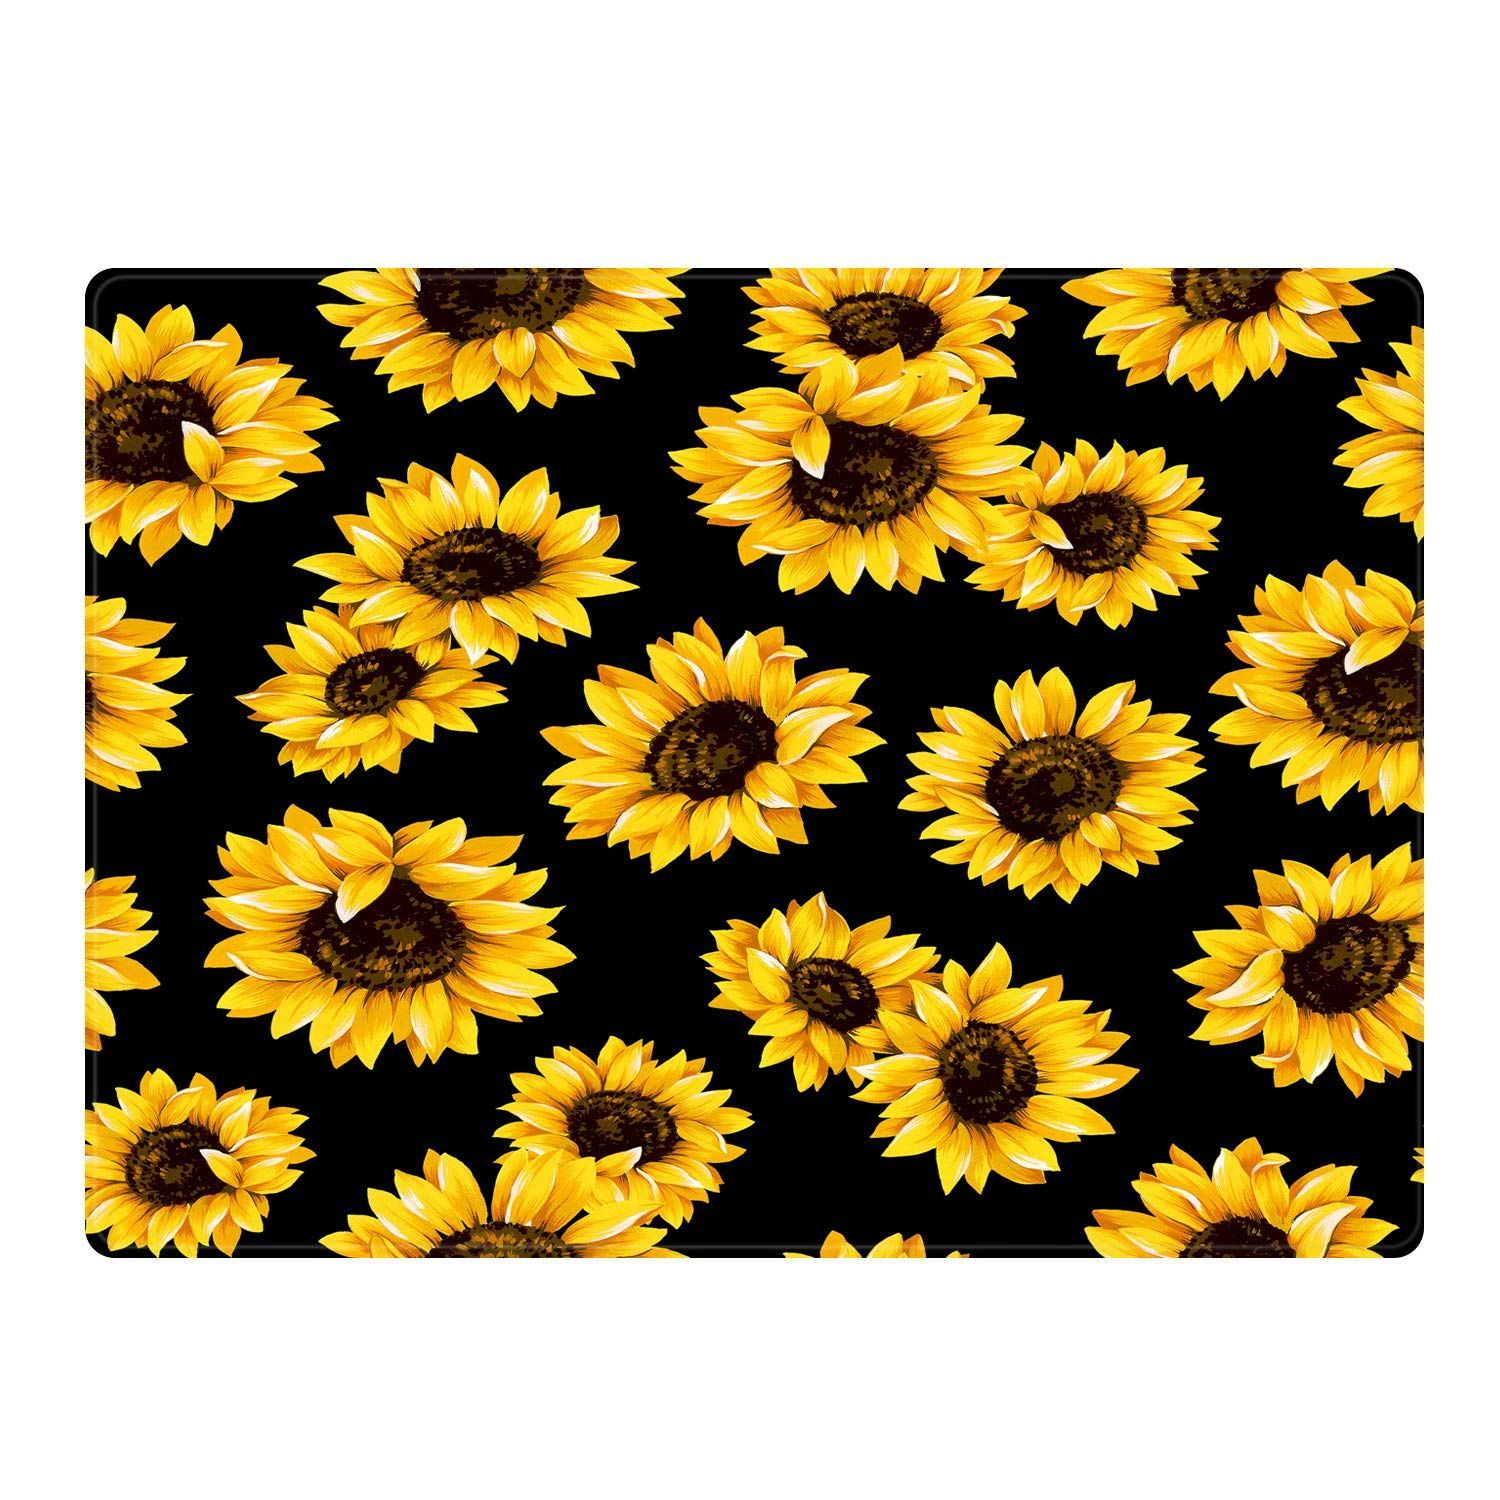 Area Rugs Sunflowers Autumn Colorful Large Rug Mat For Living Room Bedroom Playing Room 6 6 X 5 In 2020 Large Rugs Mat Rugs Area Rugs #sunflower #rugs #for #living #room